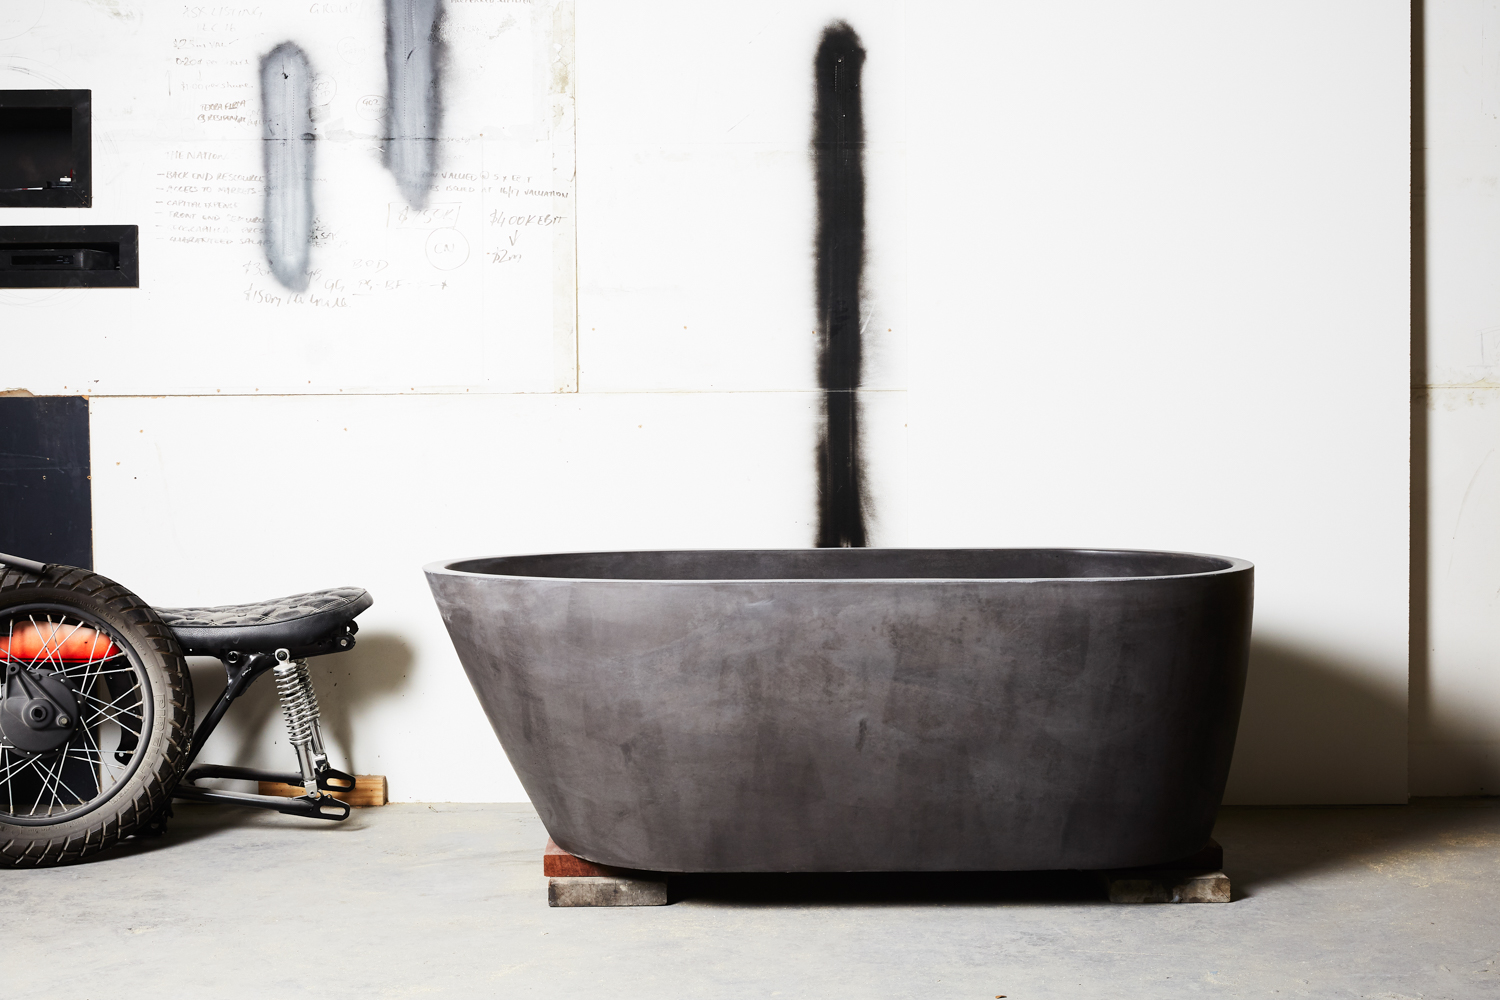 oasis-bath-concrete-nation-the-design-emotive-02.jpg